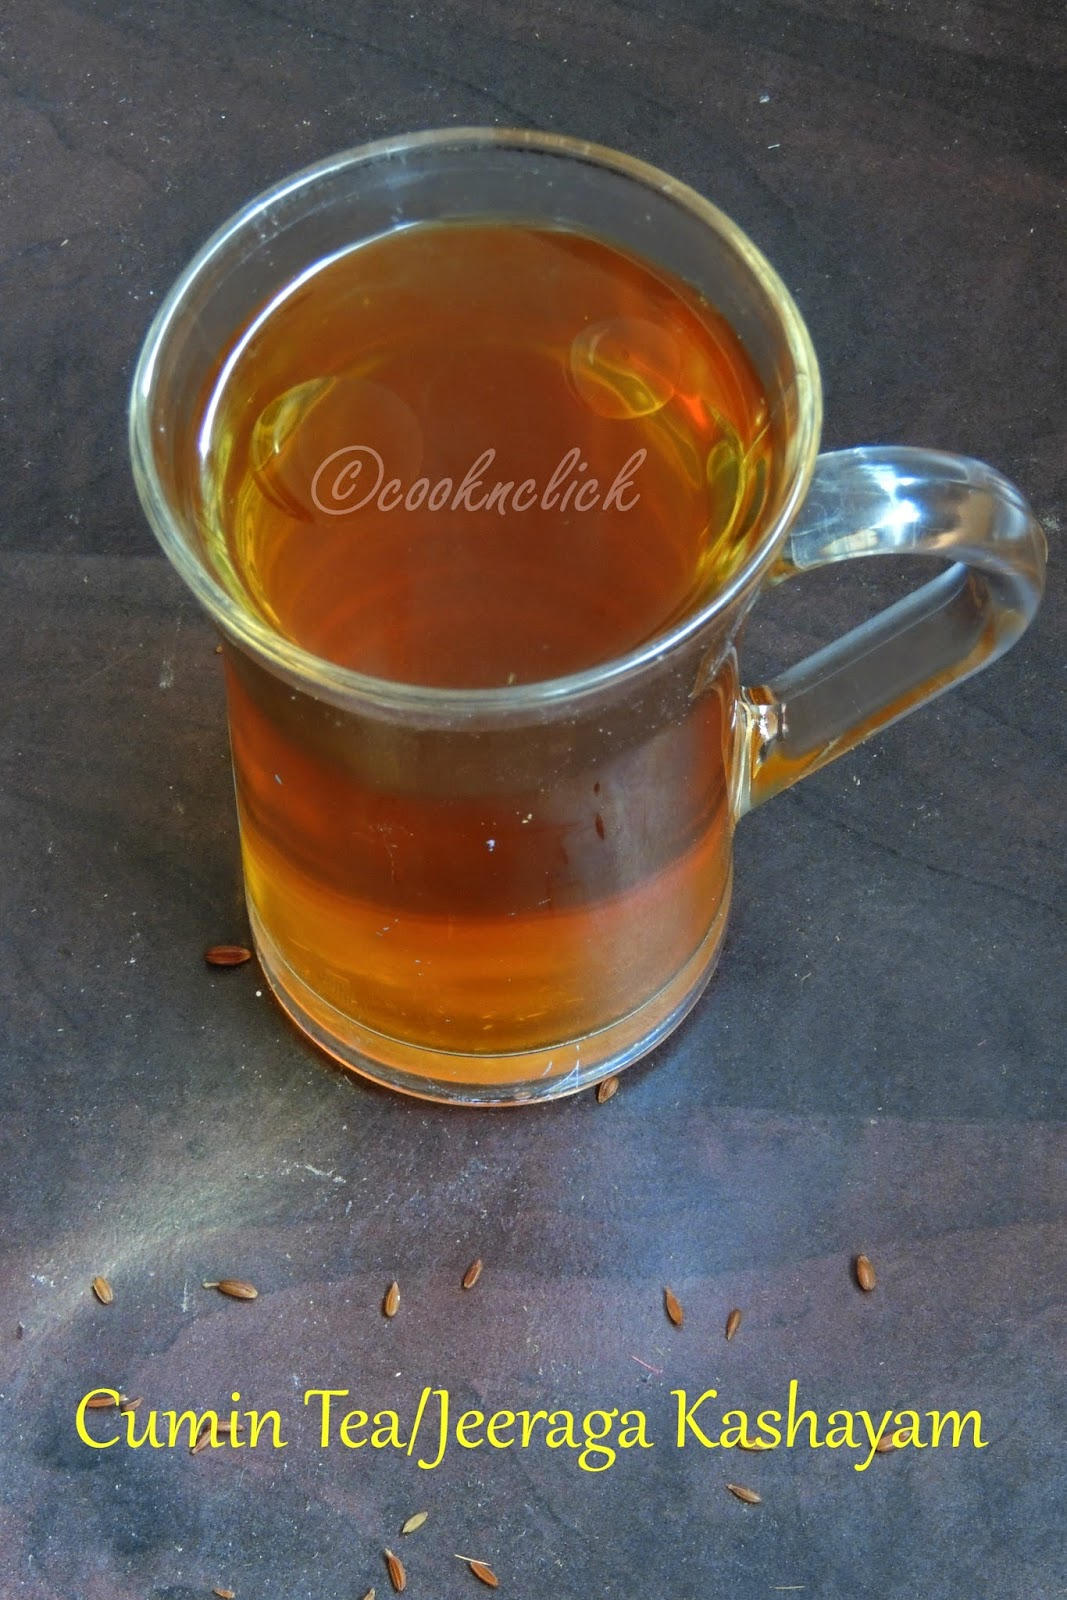 Jeerage tea, Jeeraga kashayam, cumin tea